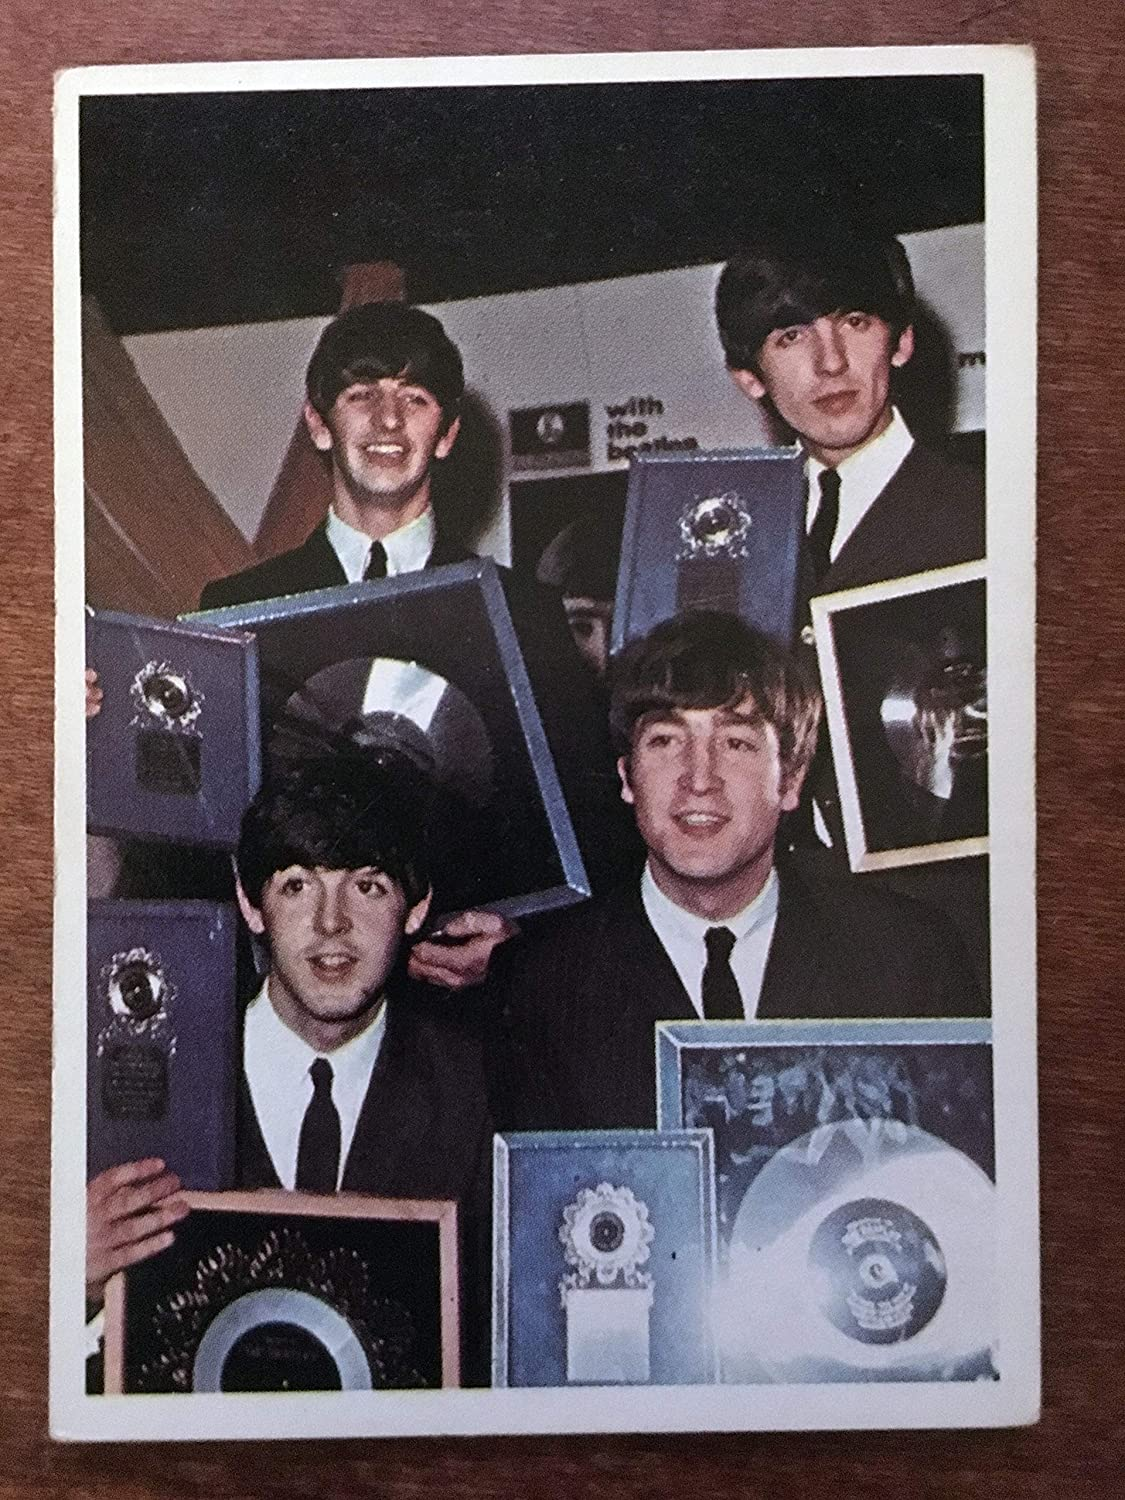 Beatles Topps Card 6 Color Series 1965 All Four Beatles Shown John Lennon Ringo Starr George Harrison And Paul Mccartney Excellent Condition All Of Our Cards Will Be In A Clear Collectors